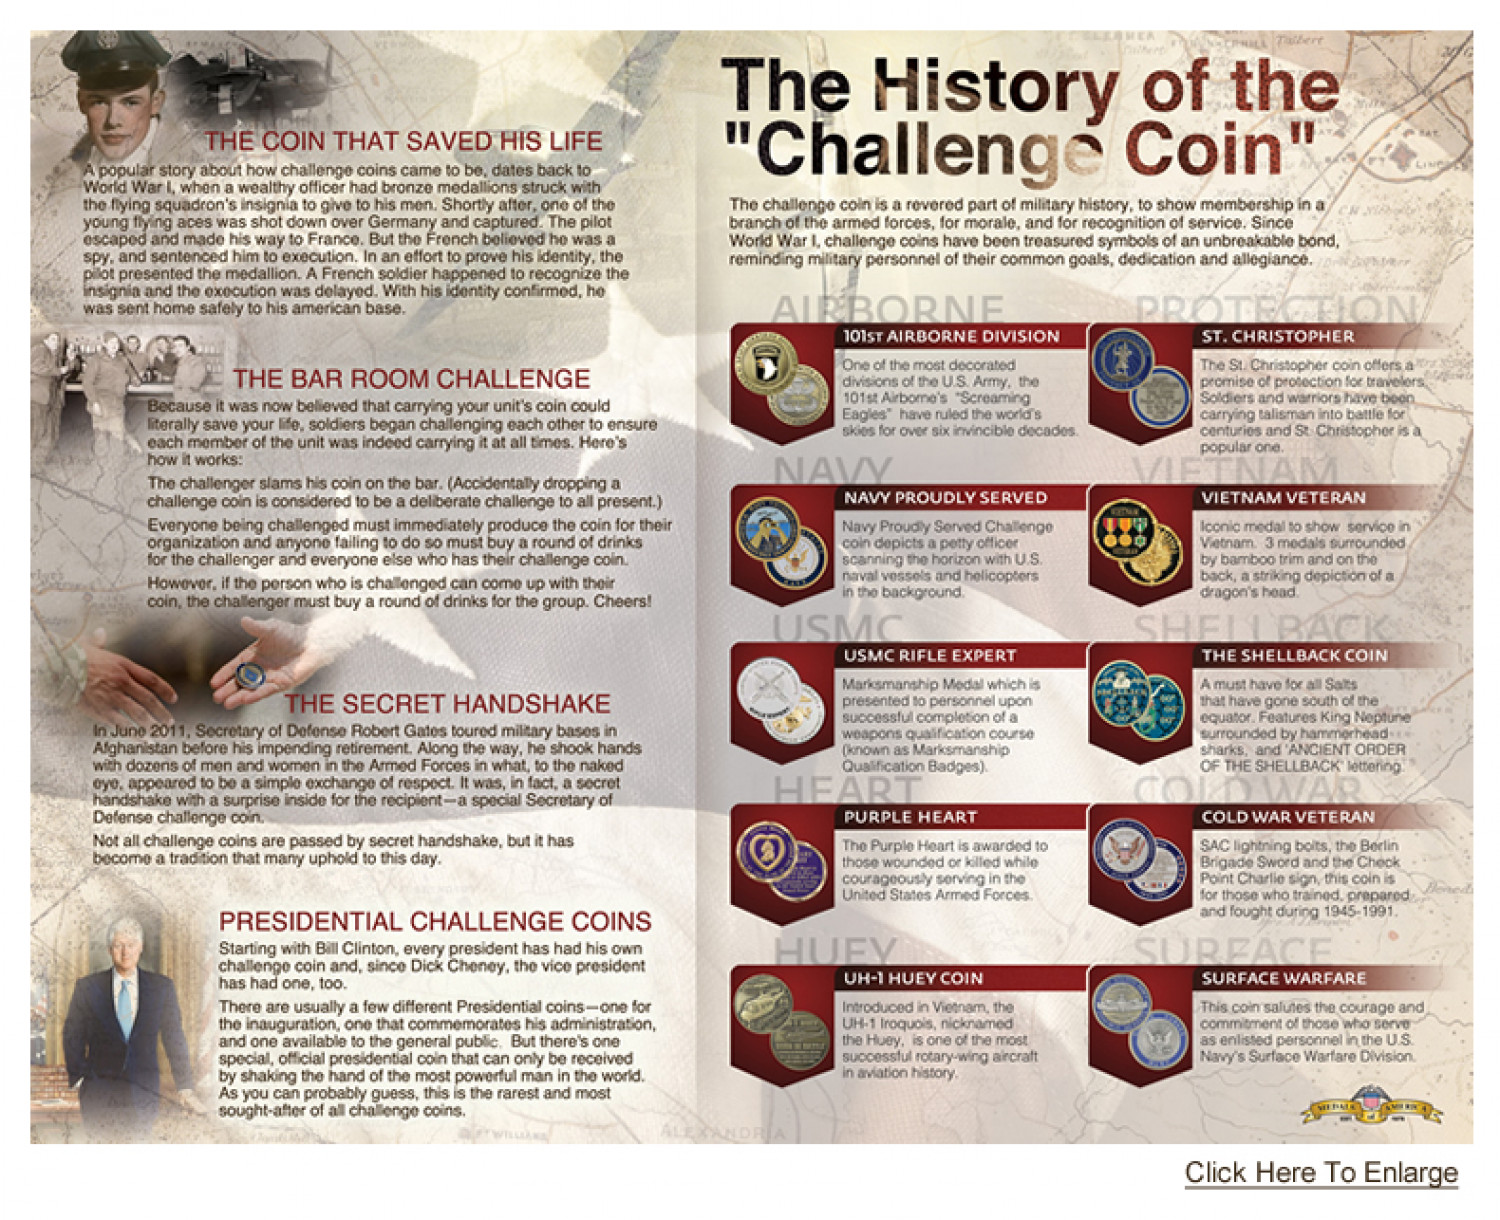 The History of the Challenge Coin Infographic